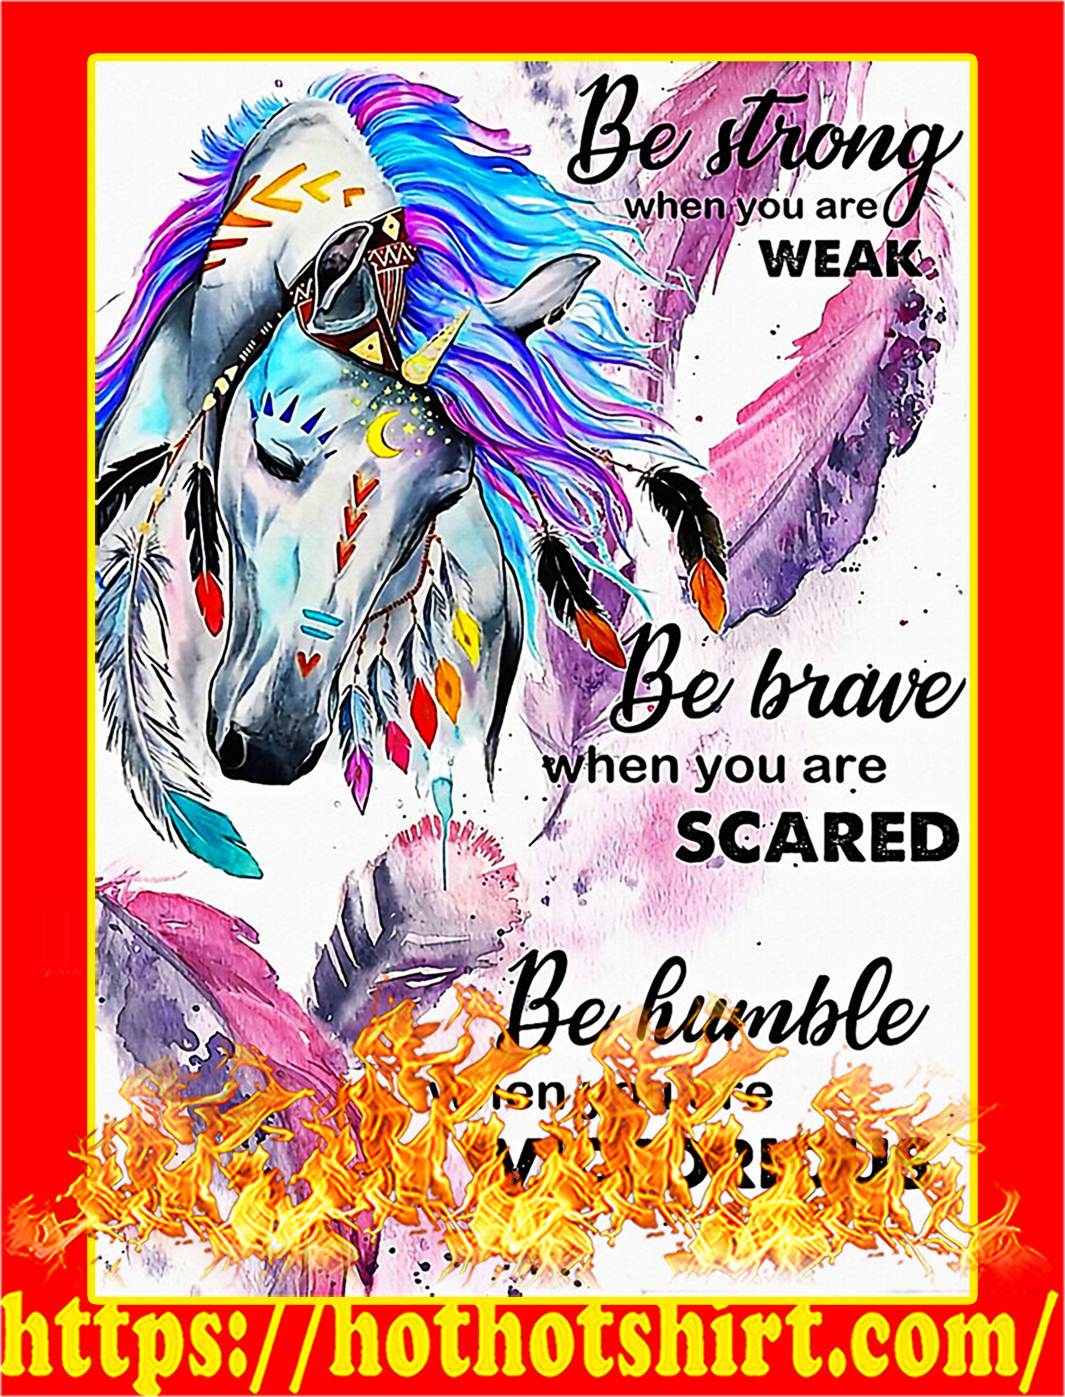 Horse girl be strong when you are weak poster- A3